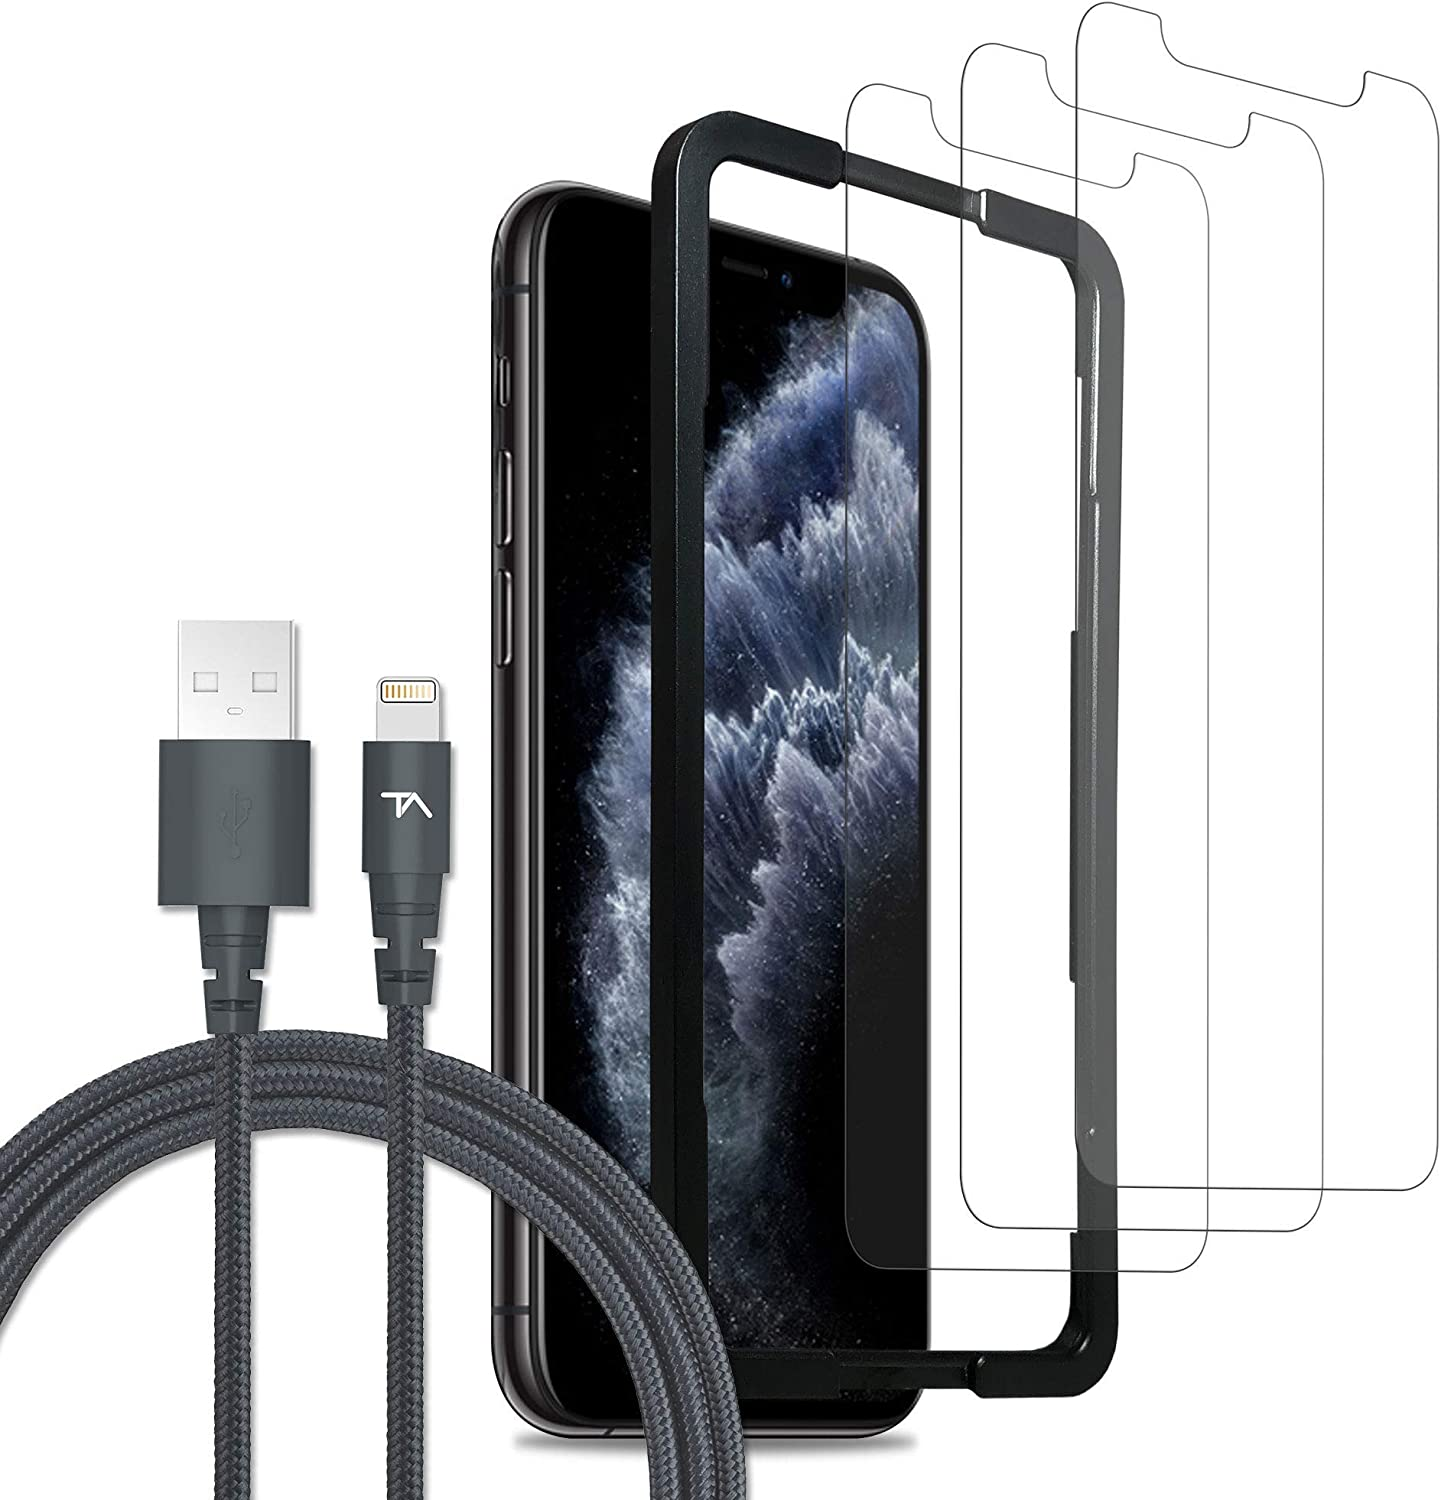 Tech Armor Ultimate Protection Bundle for Apple iPhone 11 Pro, Xs, X - Apple MFi Certified Lightning Cable [Space Gray] and Ballistic Glass Screen Protector [3 Pack] with Easy Installation Tray